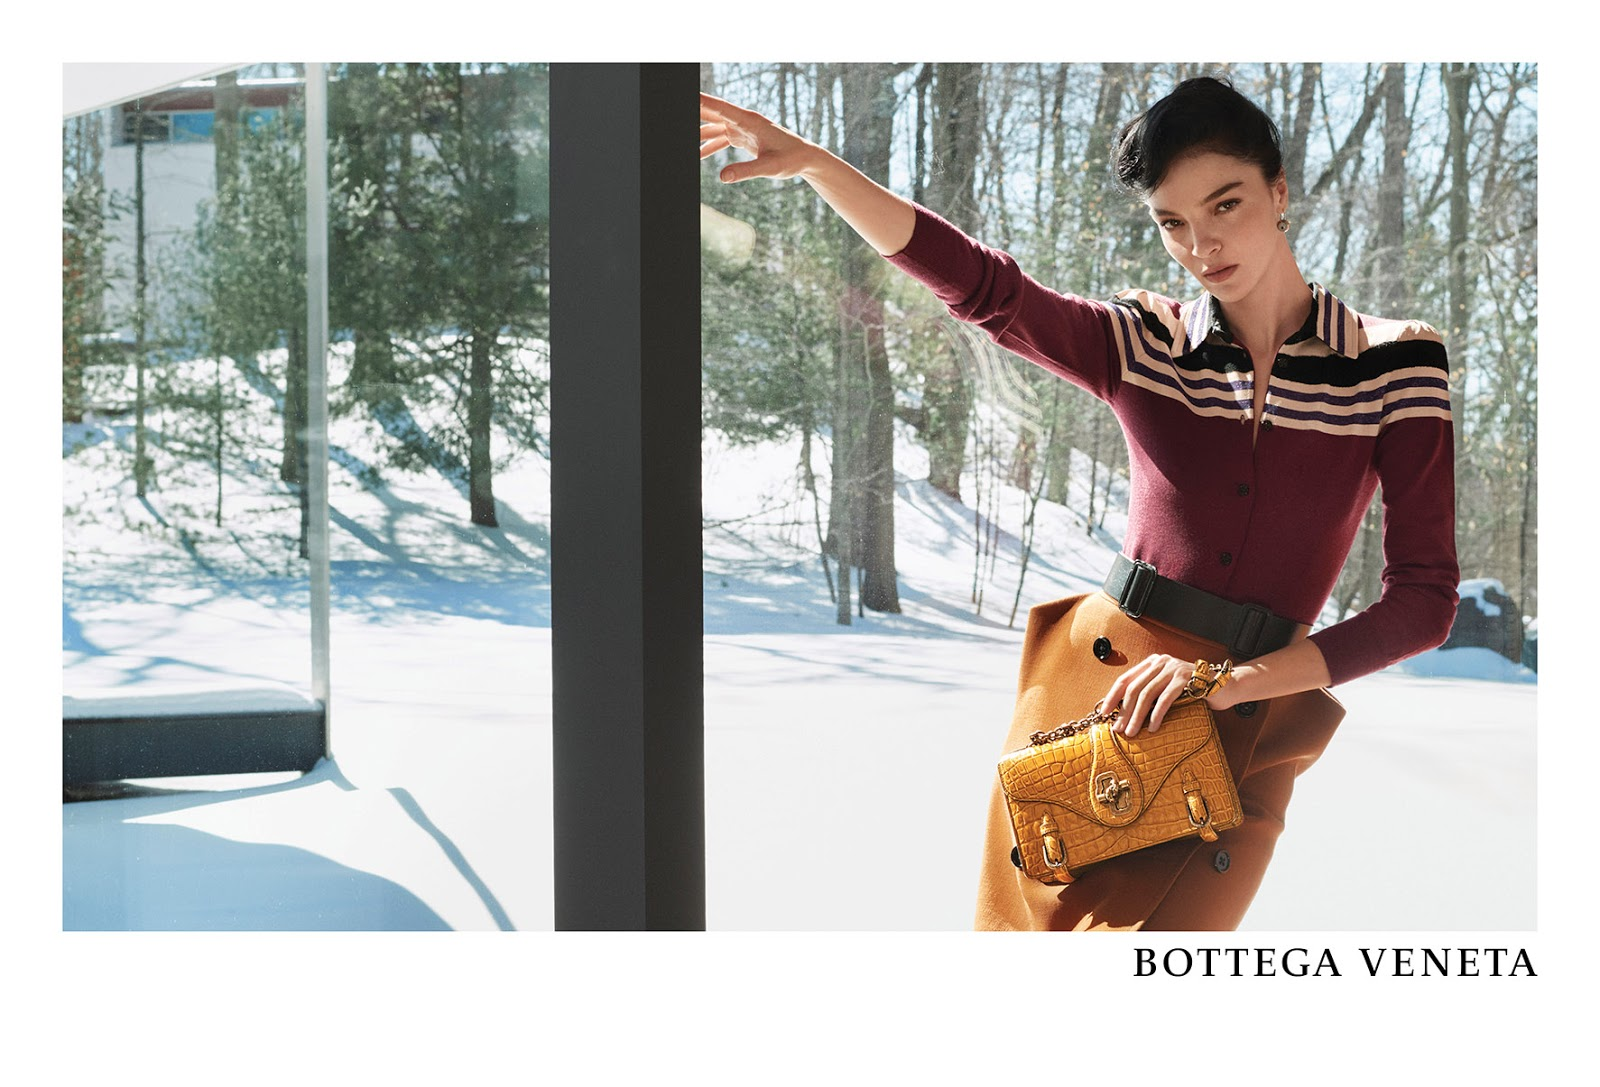 Bottega Veneta's Fall/Winter 17 Art of Collaboration Campaign & Film